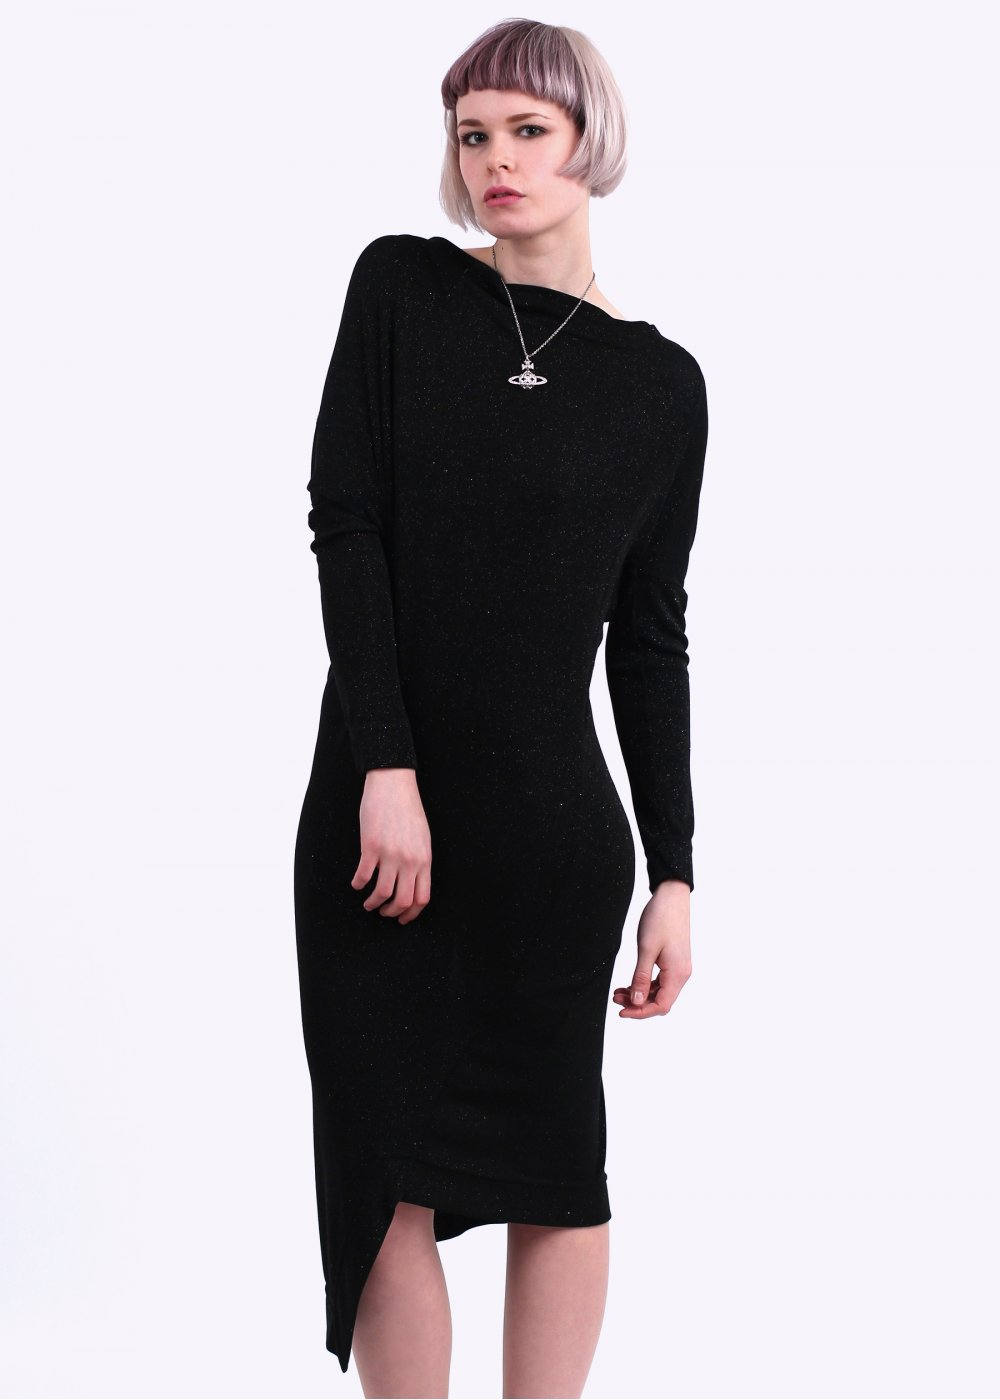 Vivienne Westwood Anglomania Hollow Dress Black Aw14